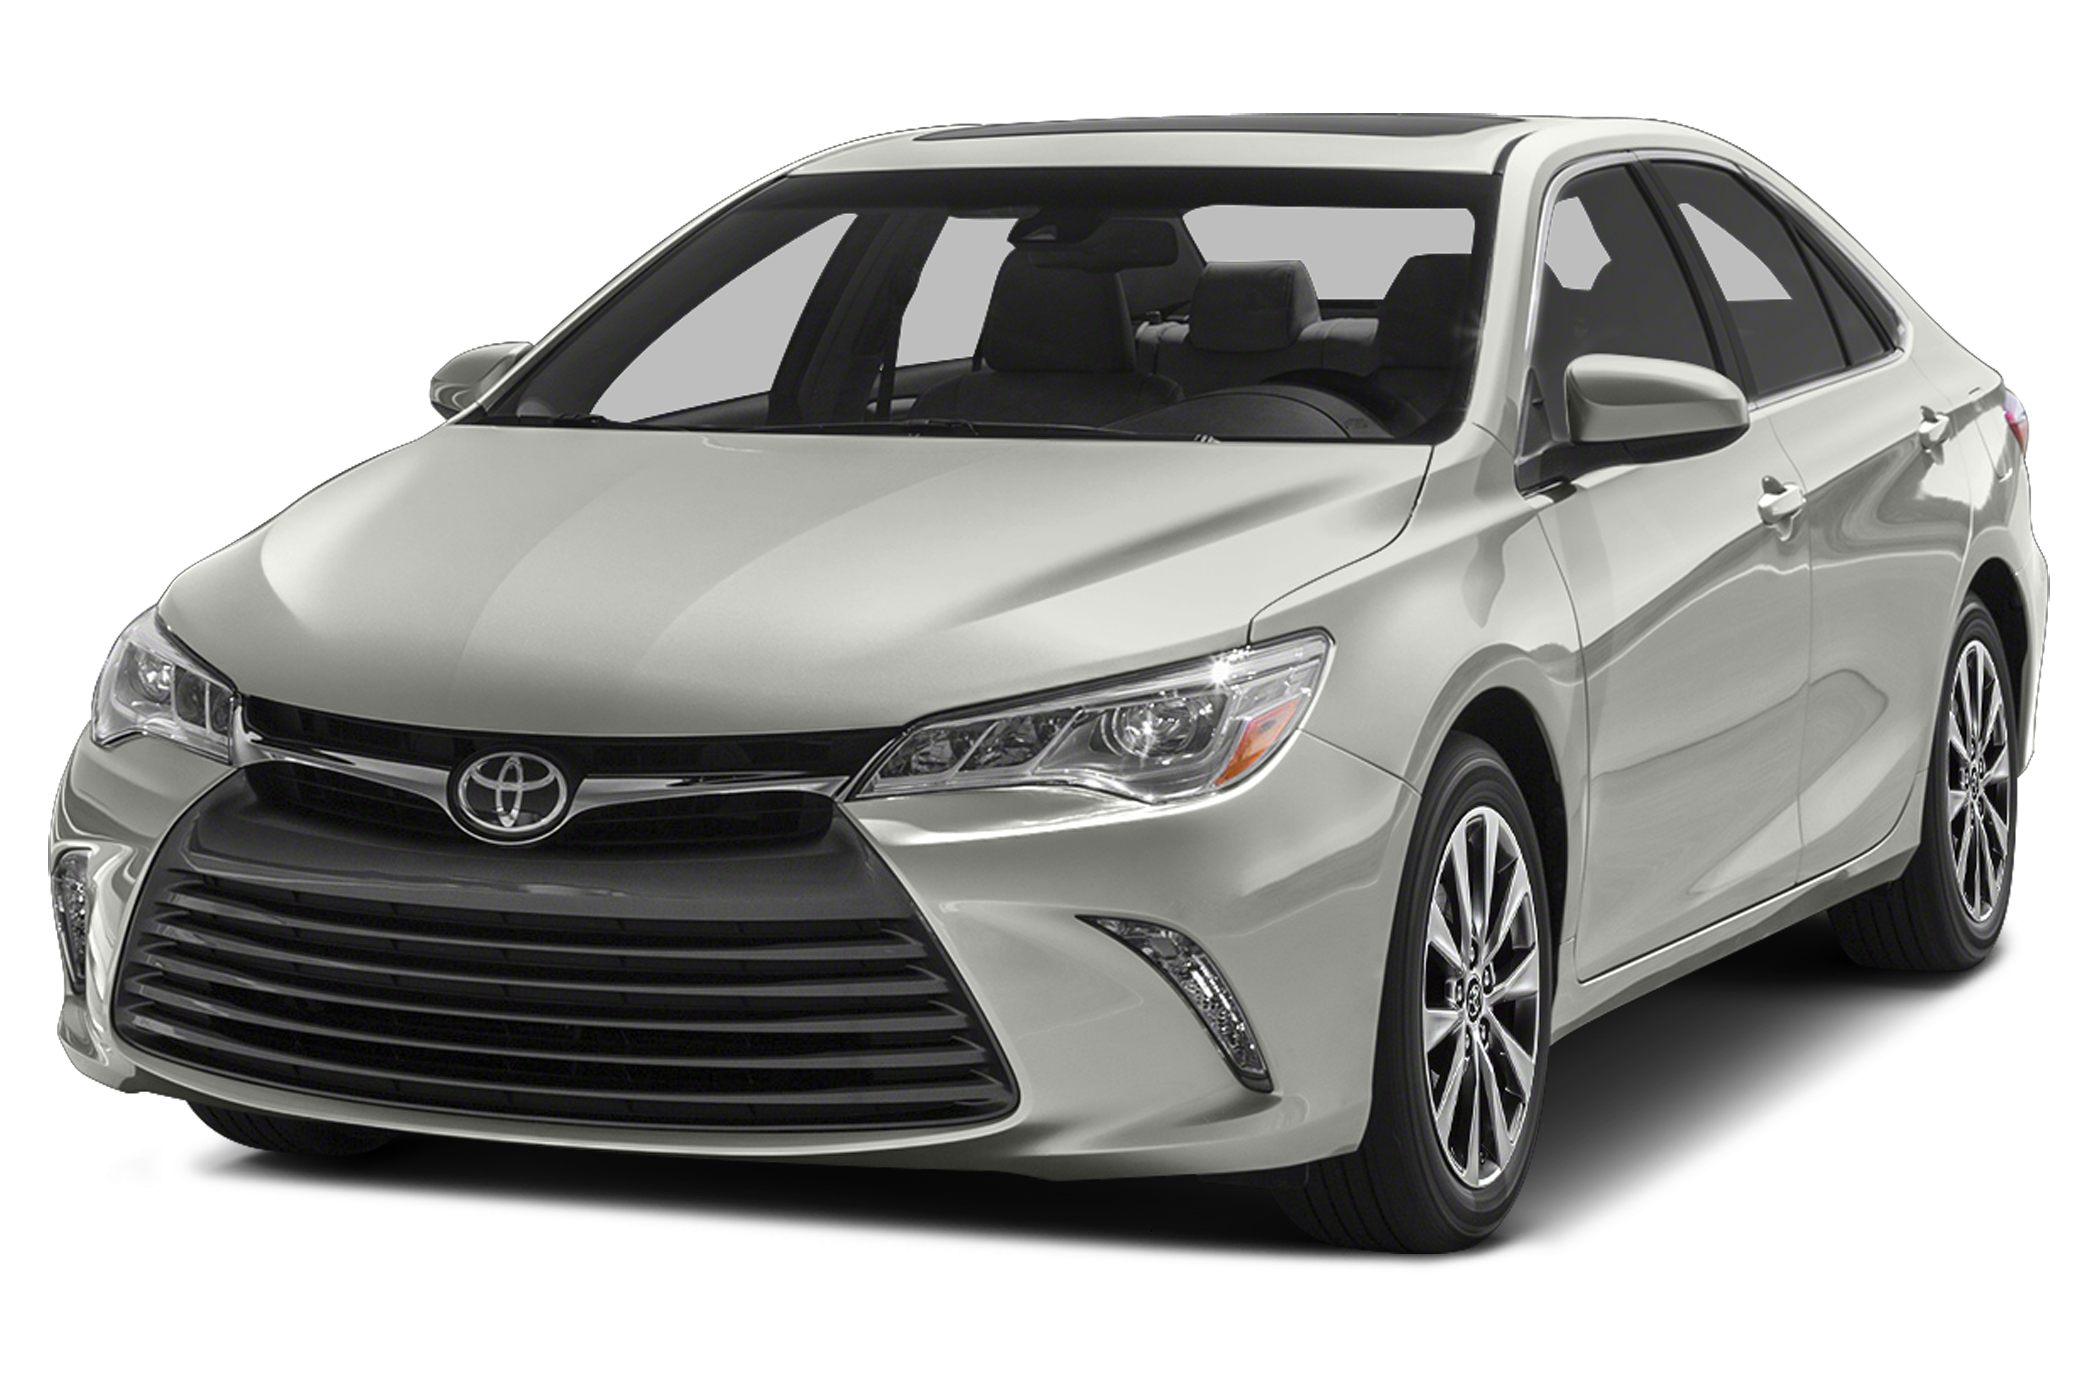 2015 Toyota Camry LE Sedan for sale in Mentor for $24,020 with 0 miles.